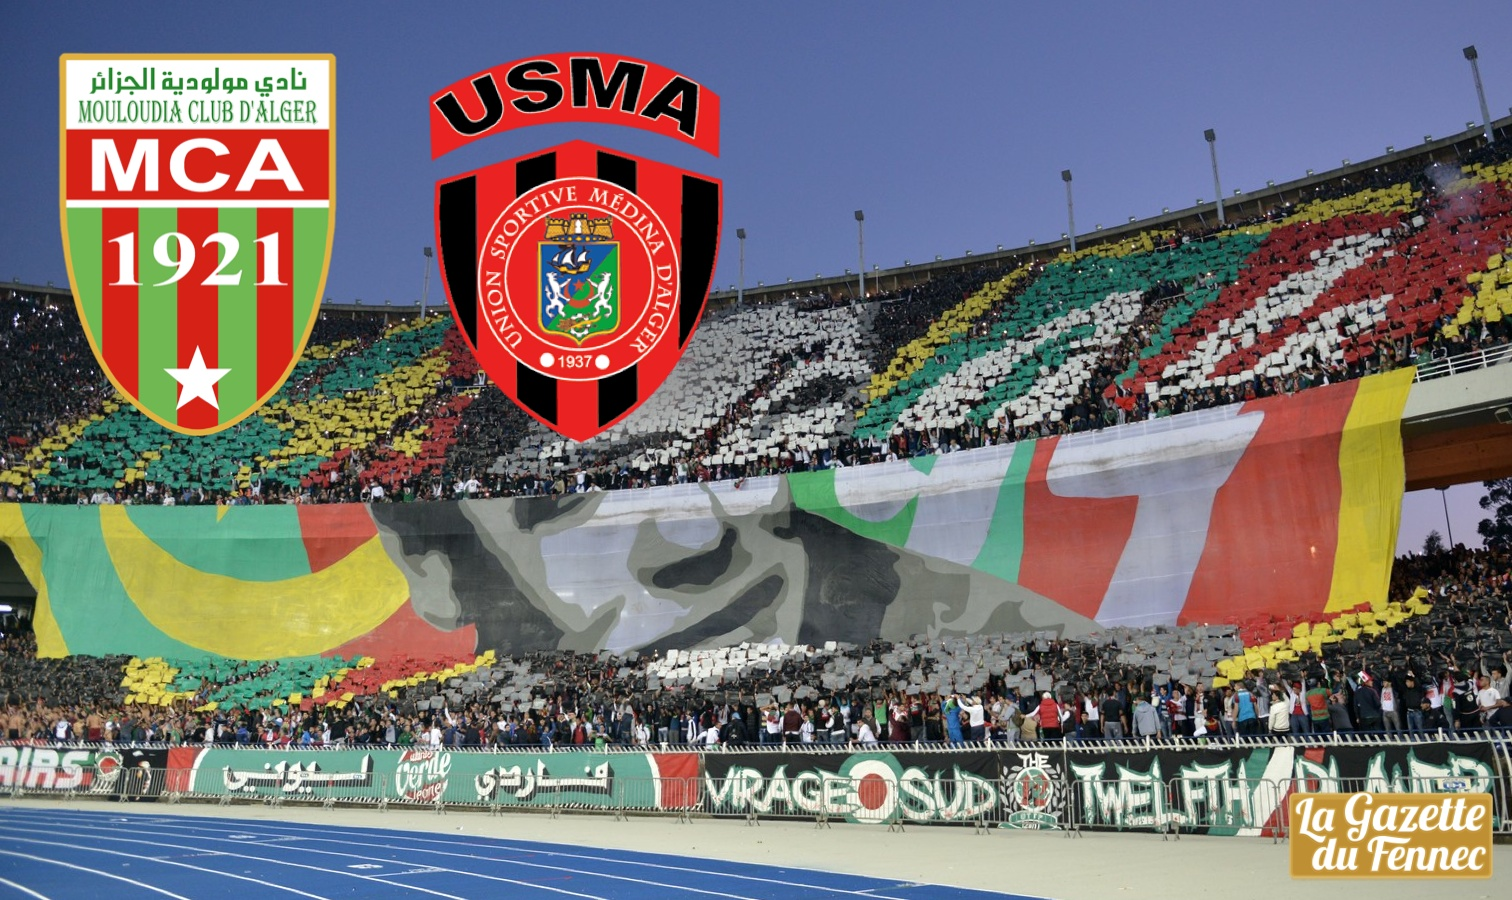 derby mca usma